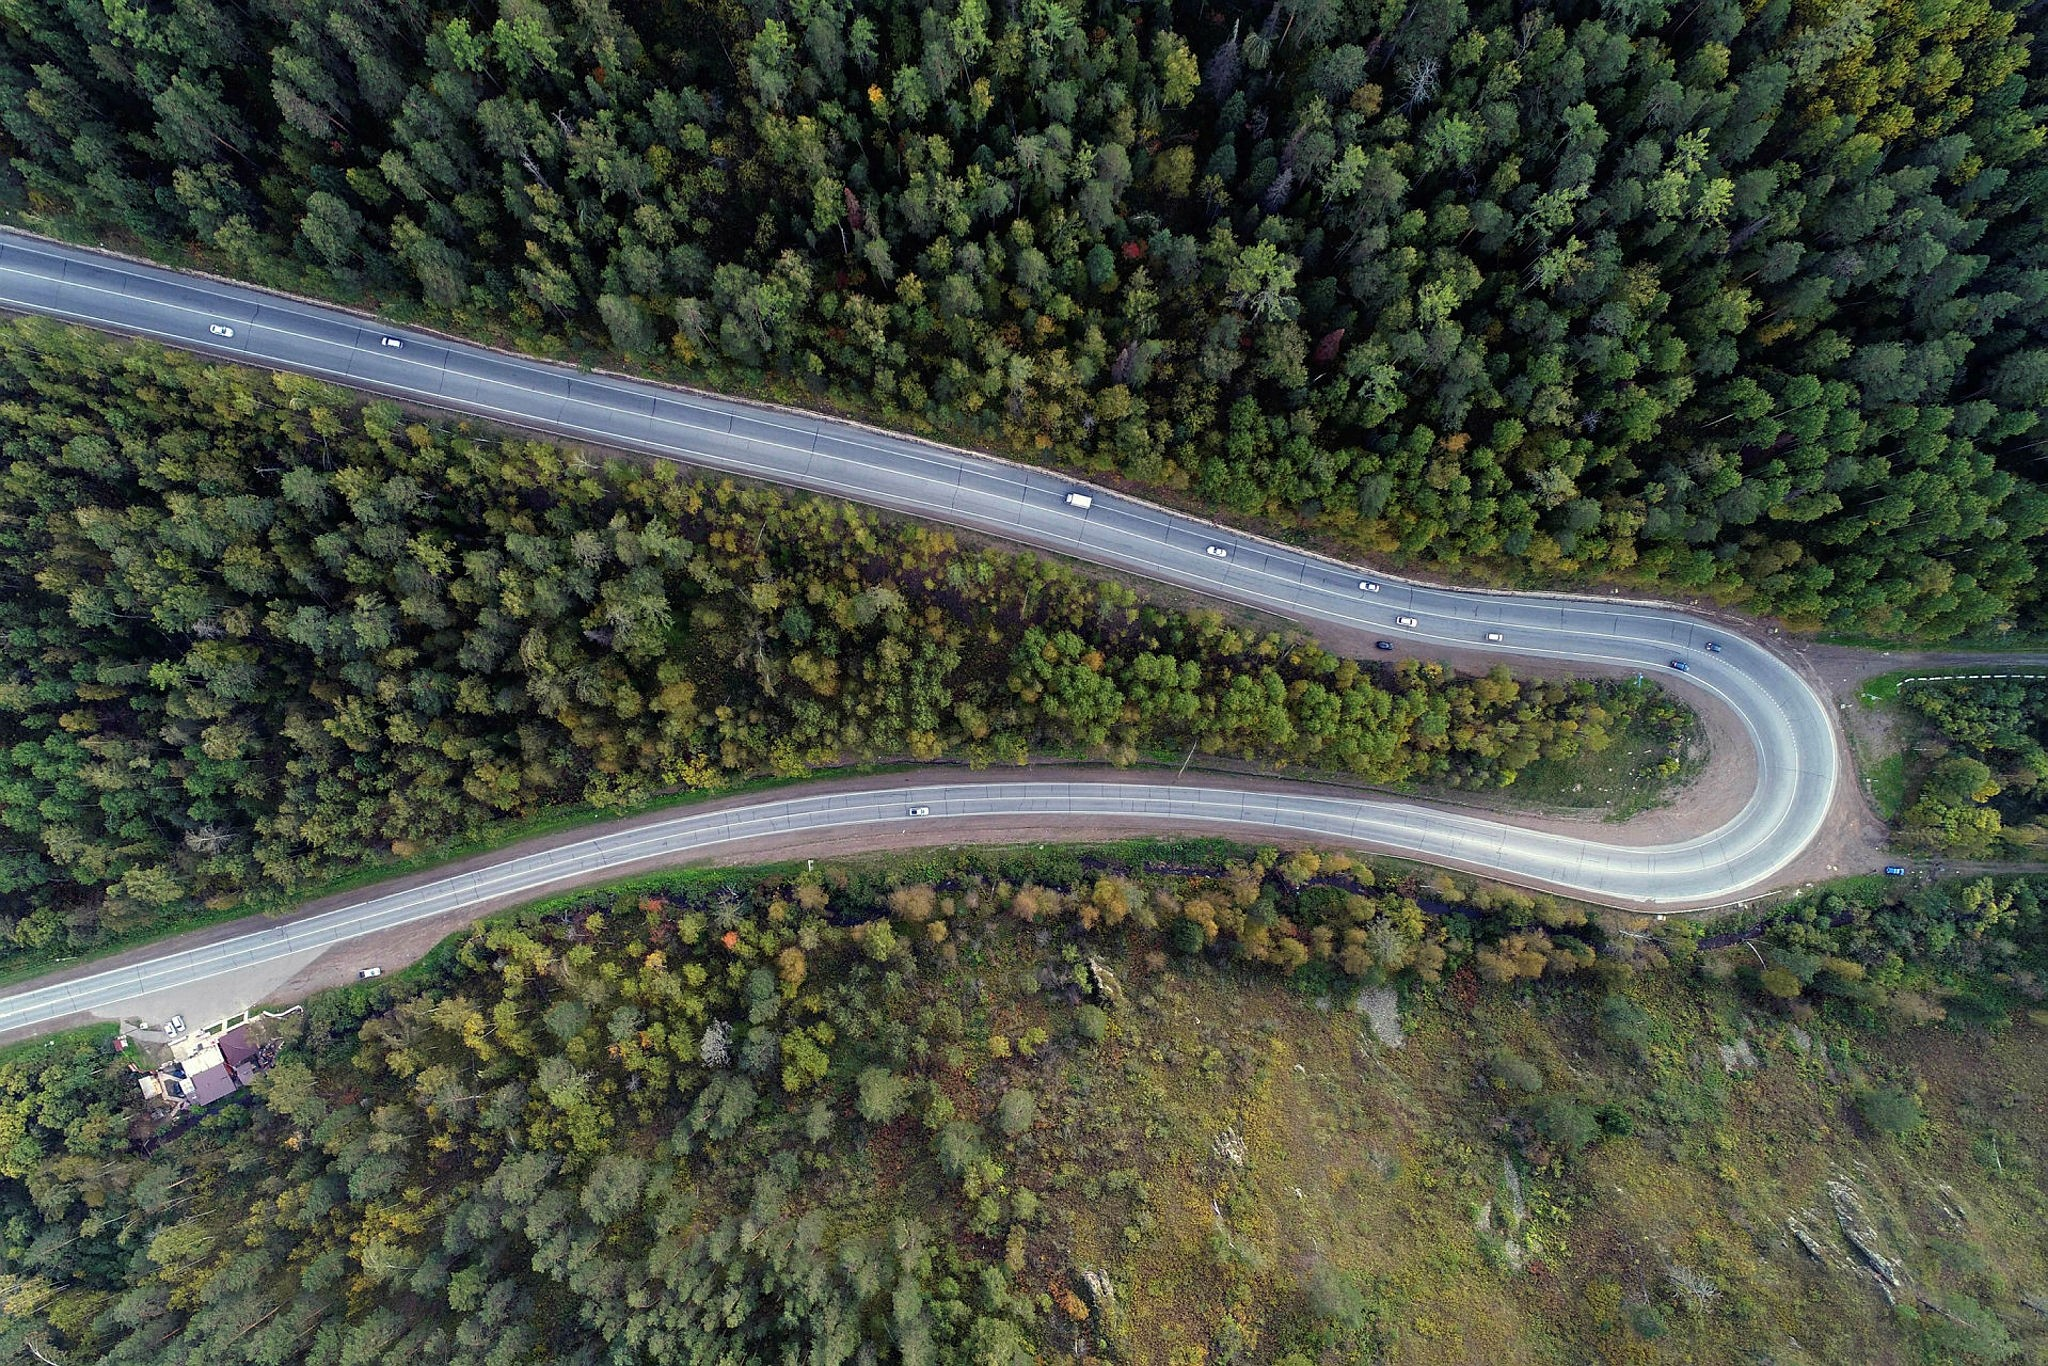 An aerial view shows vehicles driving along the M54 federal highway in the Siberian Taiga area outside Krasnoyarsk, Russia September 5, 2017. (REUTERS Photo)